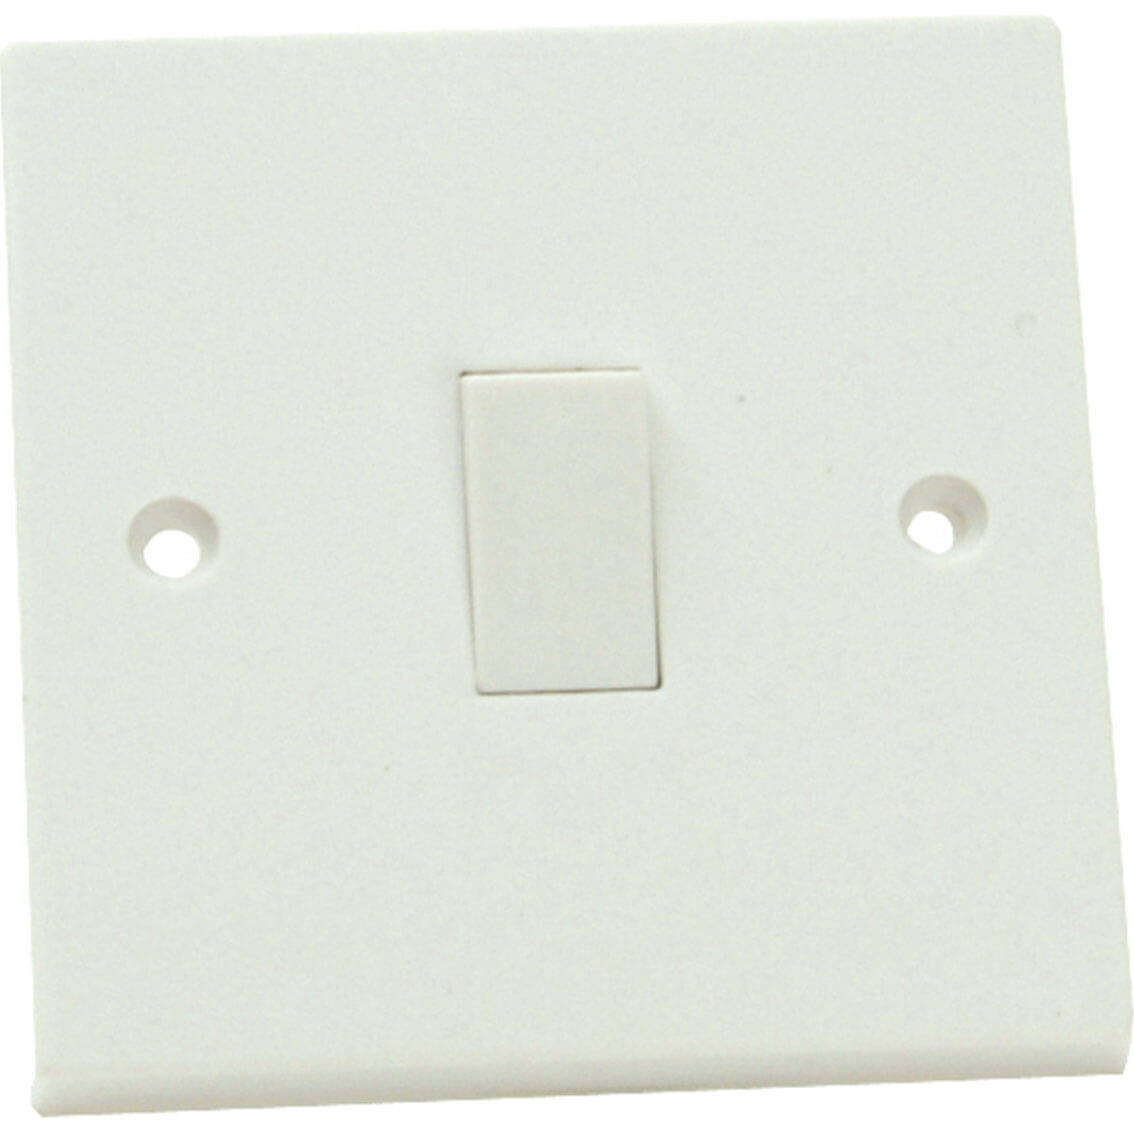 Tooled Up/Electrical & Lighting/Lighting & light bulbs/Smj 1 Gang 1 Way Light Switch